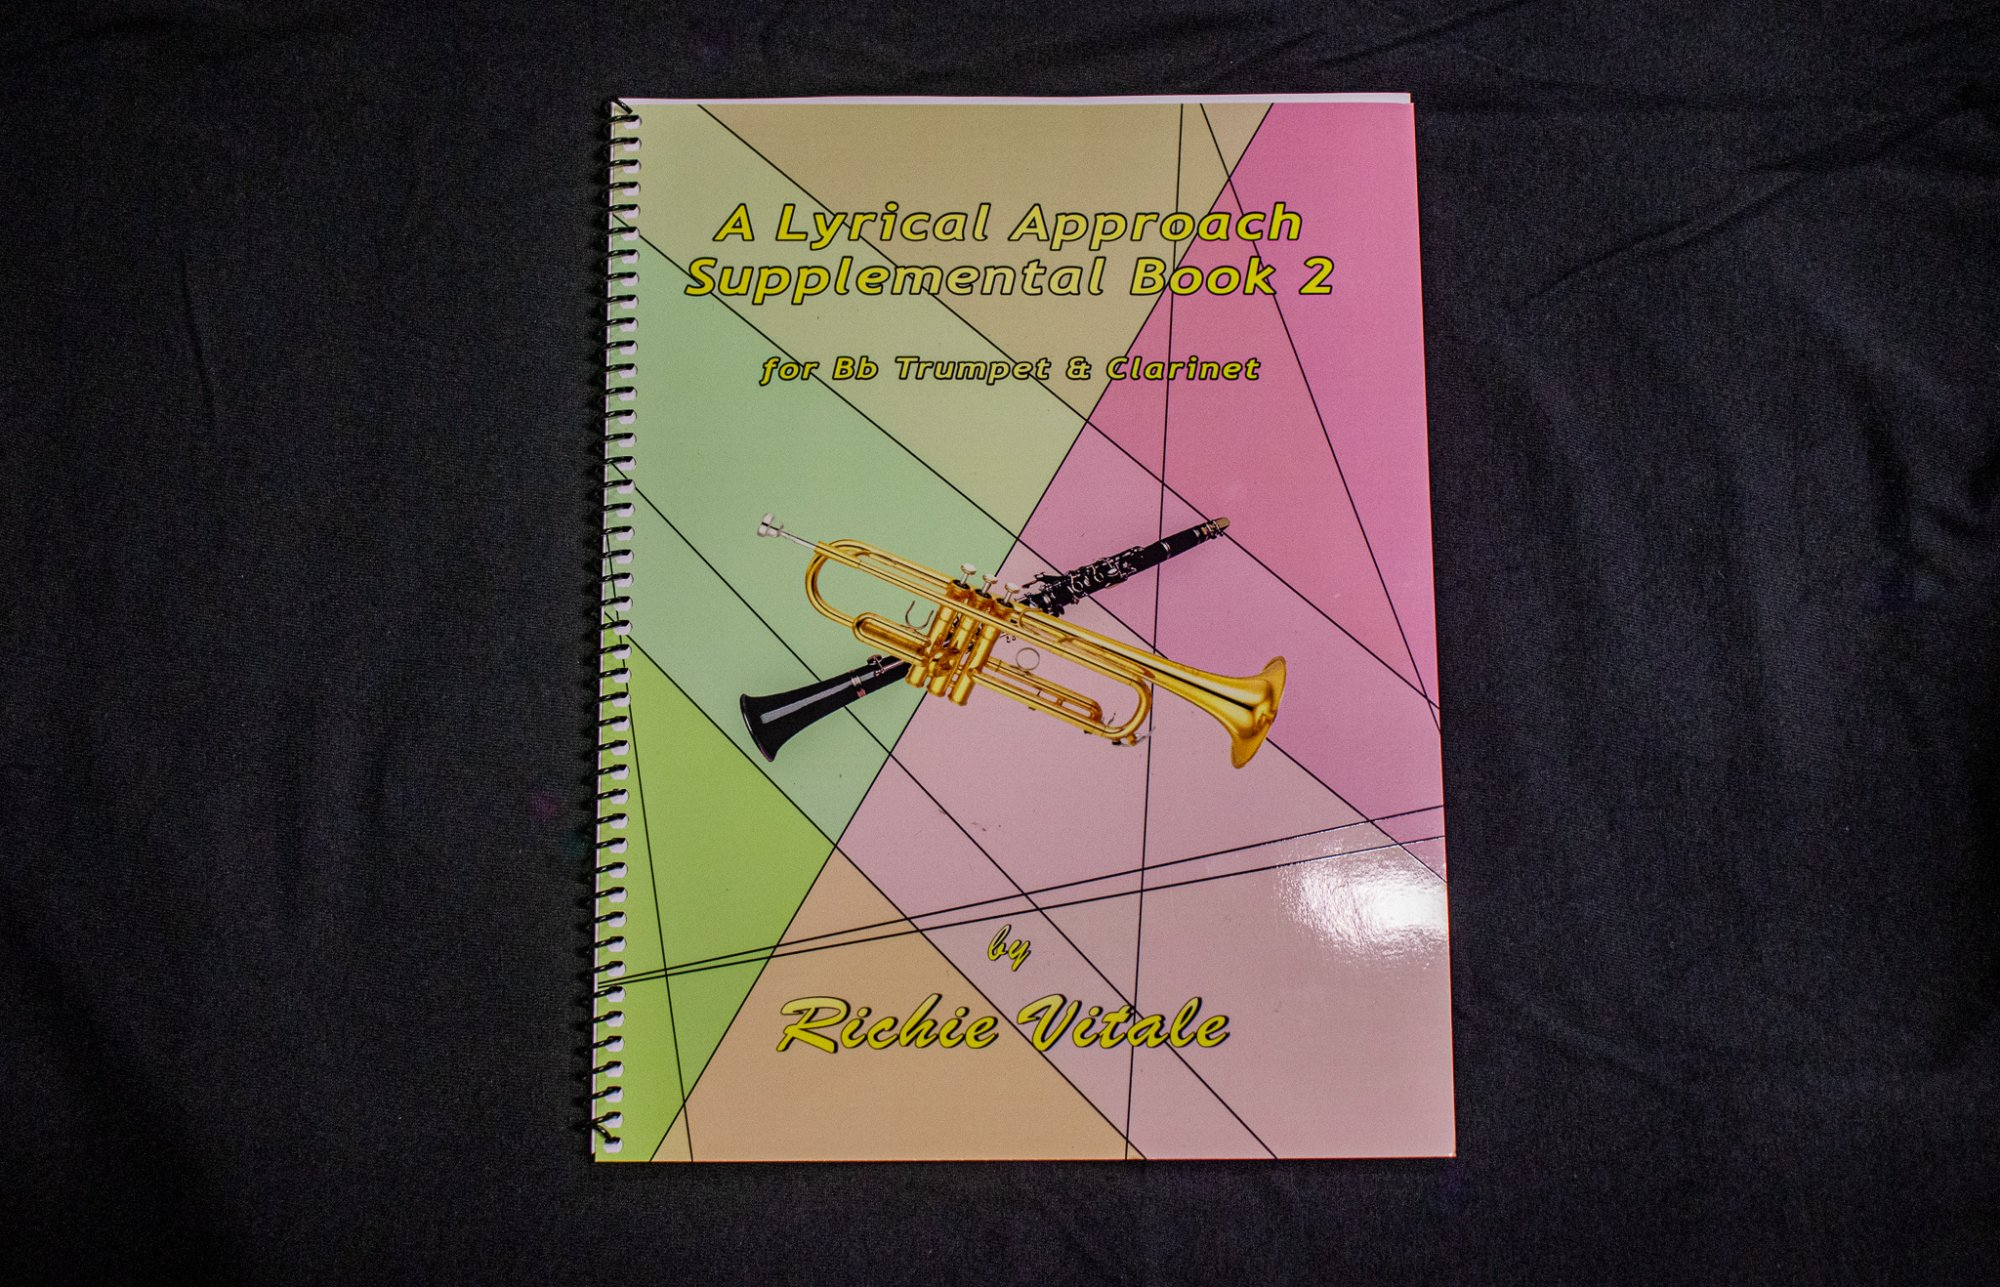 A Lyrical Approach Supplemental Book 2 by Richie Vitale